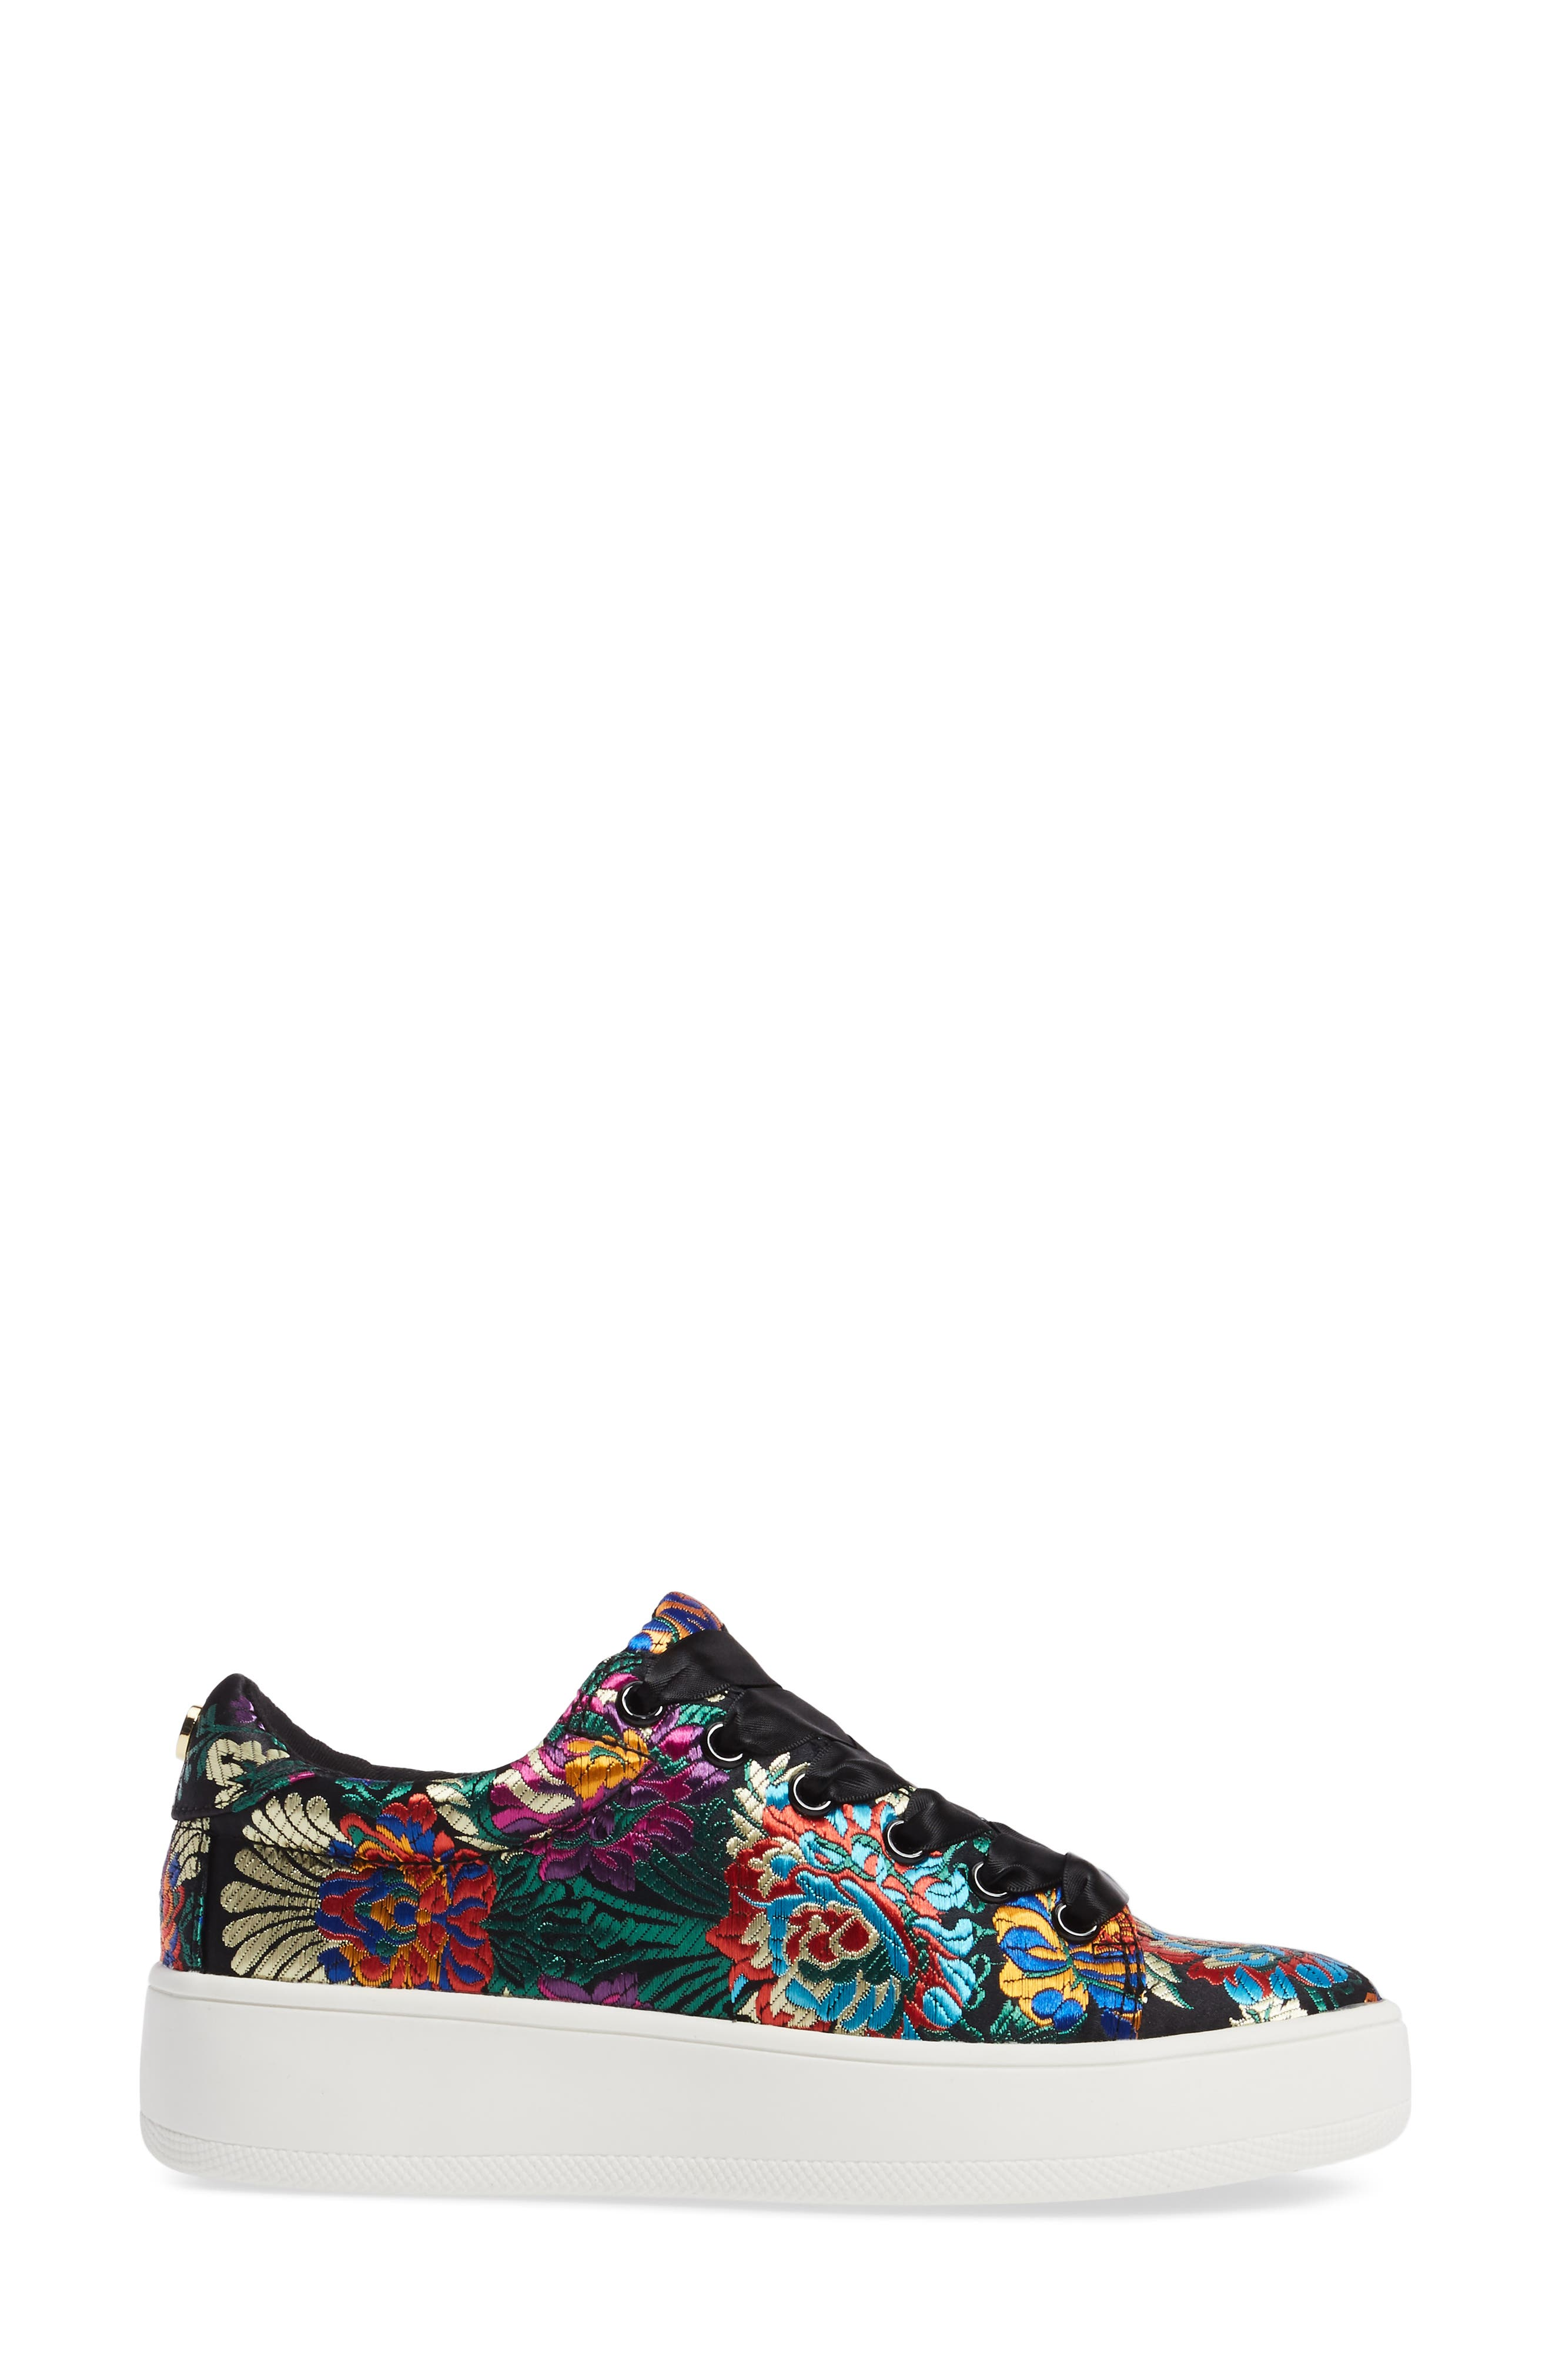 Brody Embroidered Flower Sneaker,                             Alternate thumbnail 3, color,                             Multi